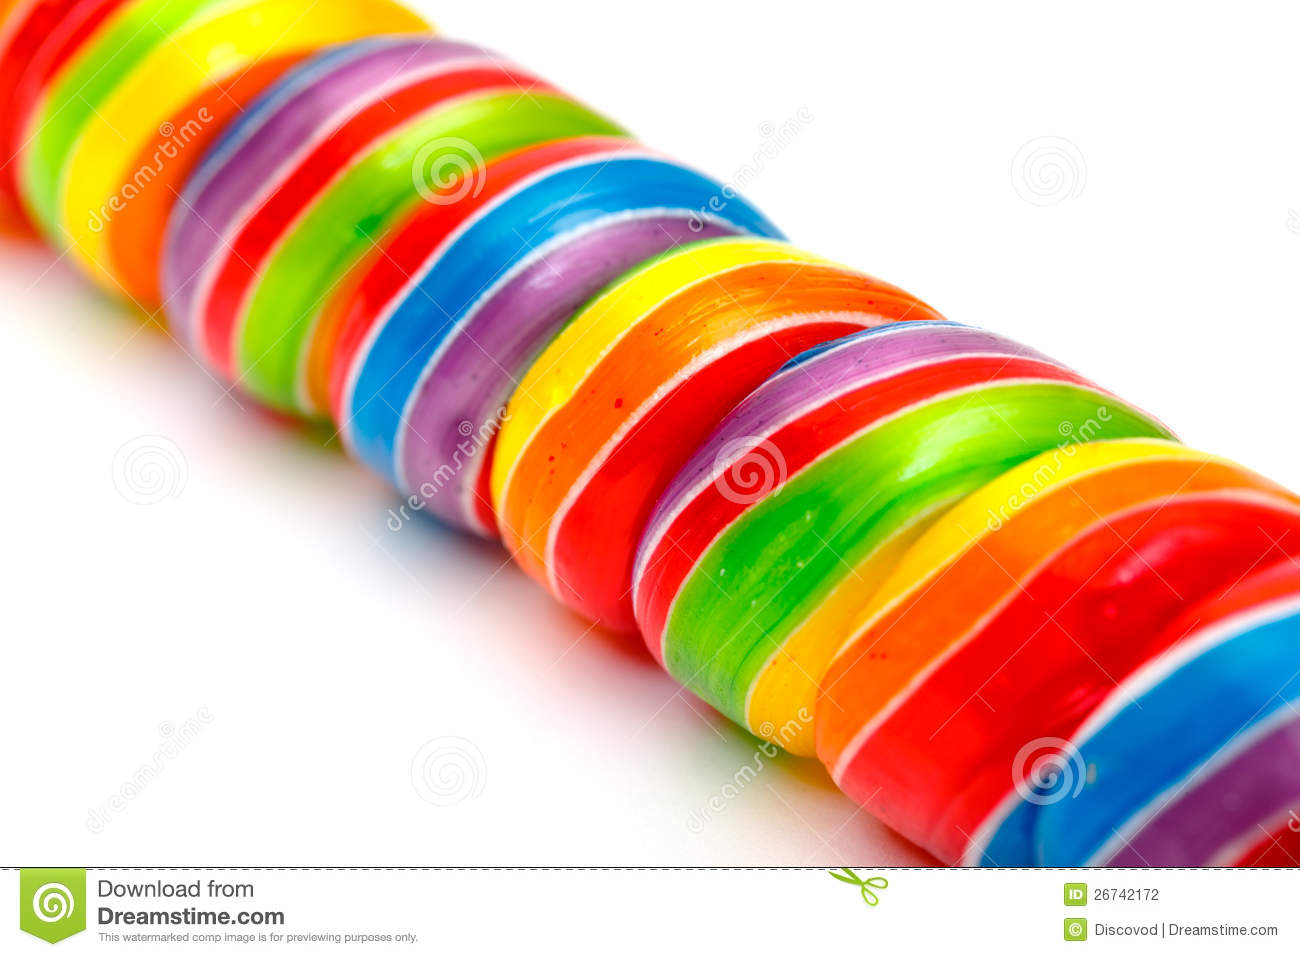 Rainbow Twirl Lollipop Candies Stock Photography - Image: 26742172